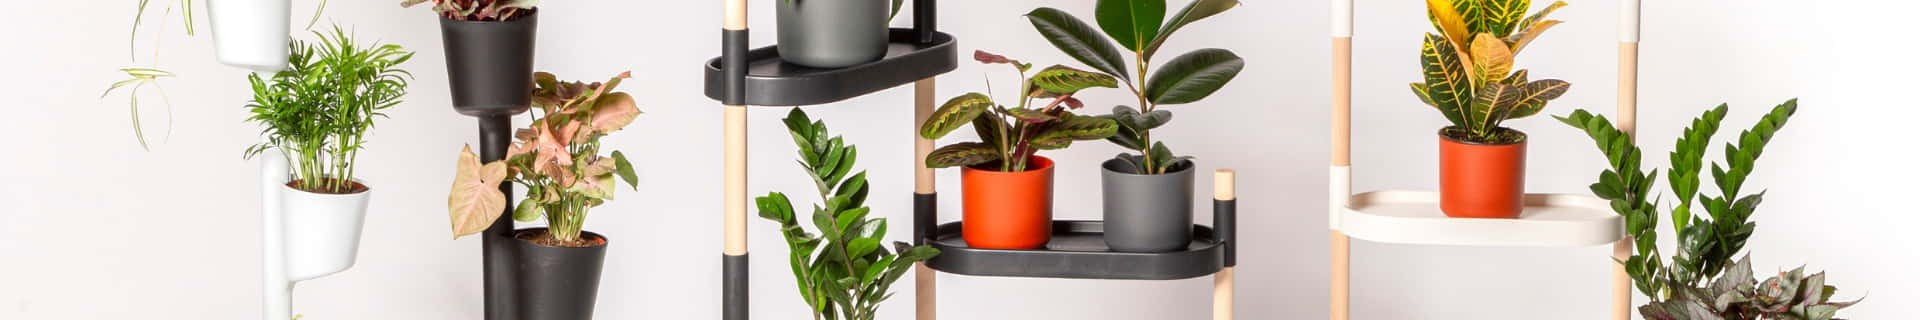 CitySens best-selling products: vertical planters, plant shelves and wall planters.